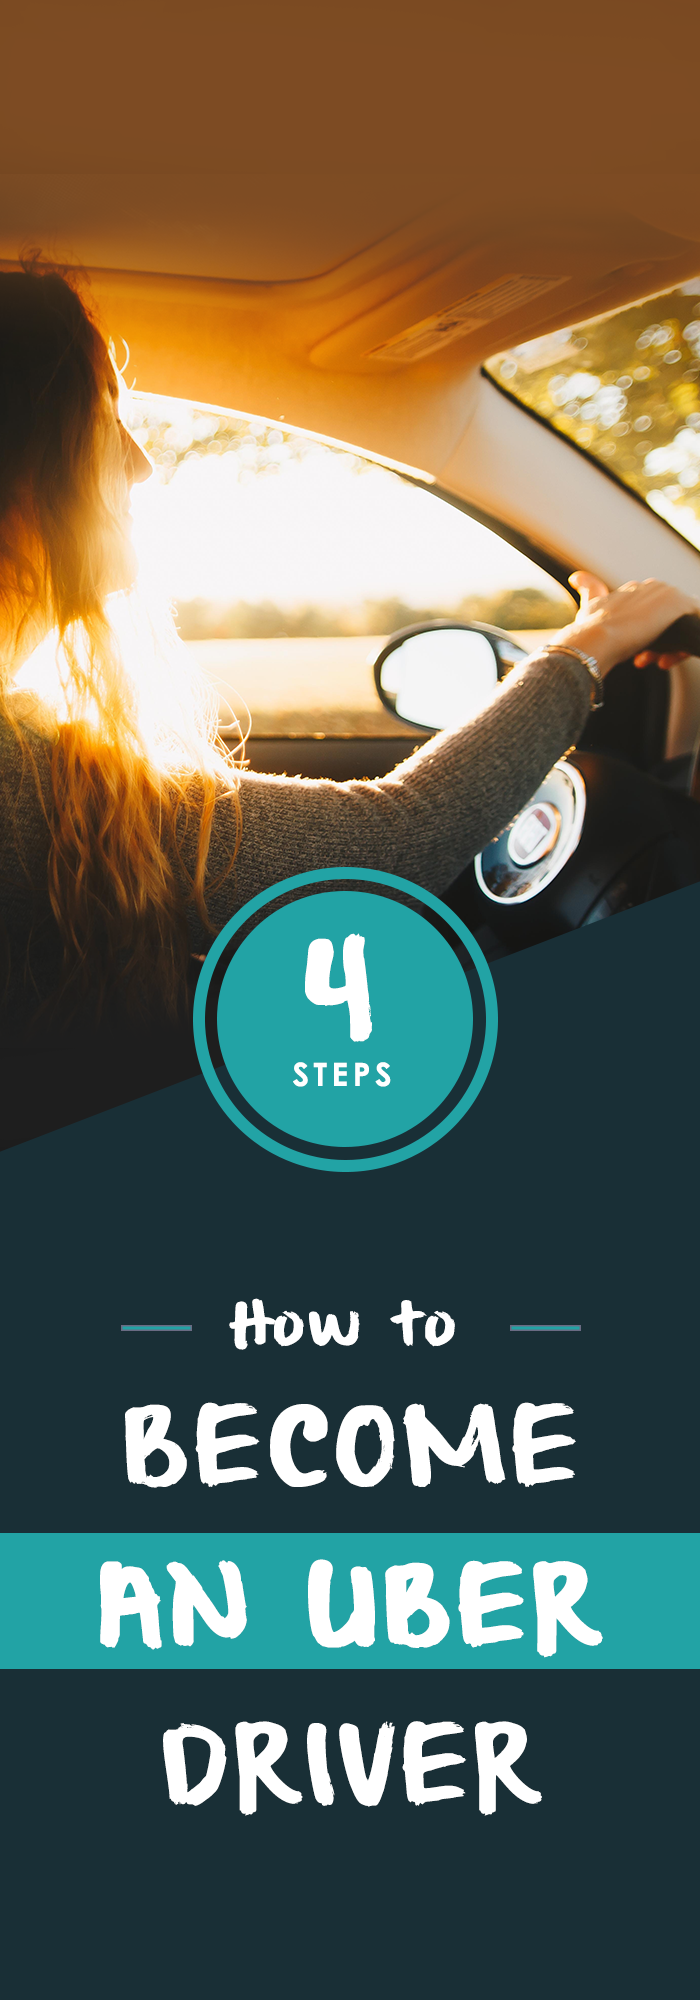 How to an Uber Driver in 4 Simple Steps Uber